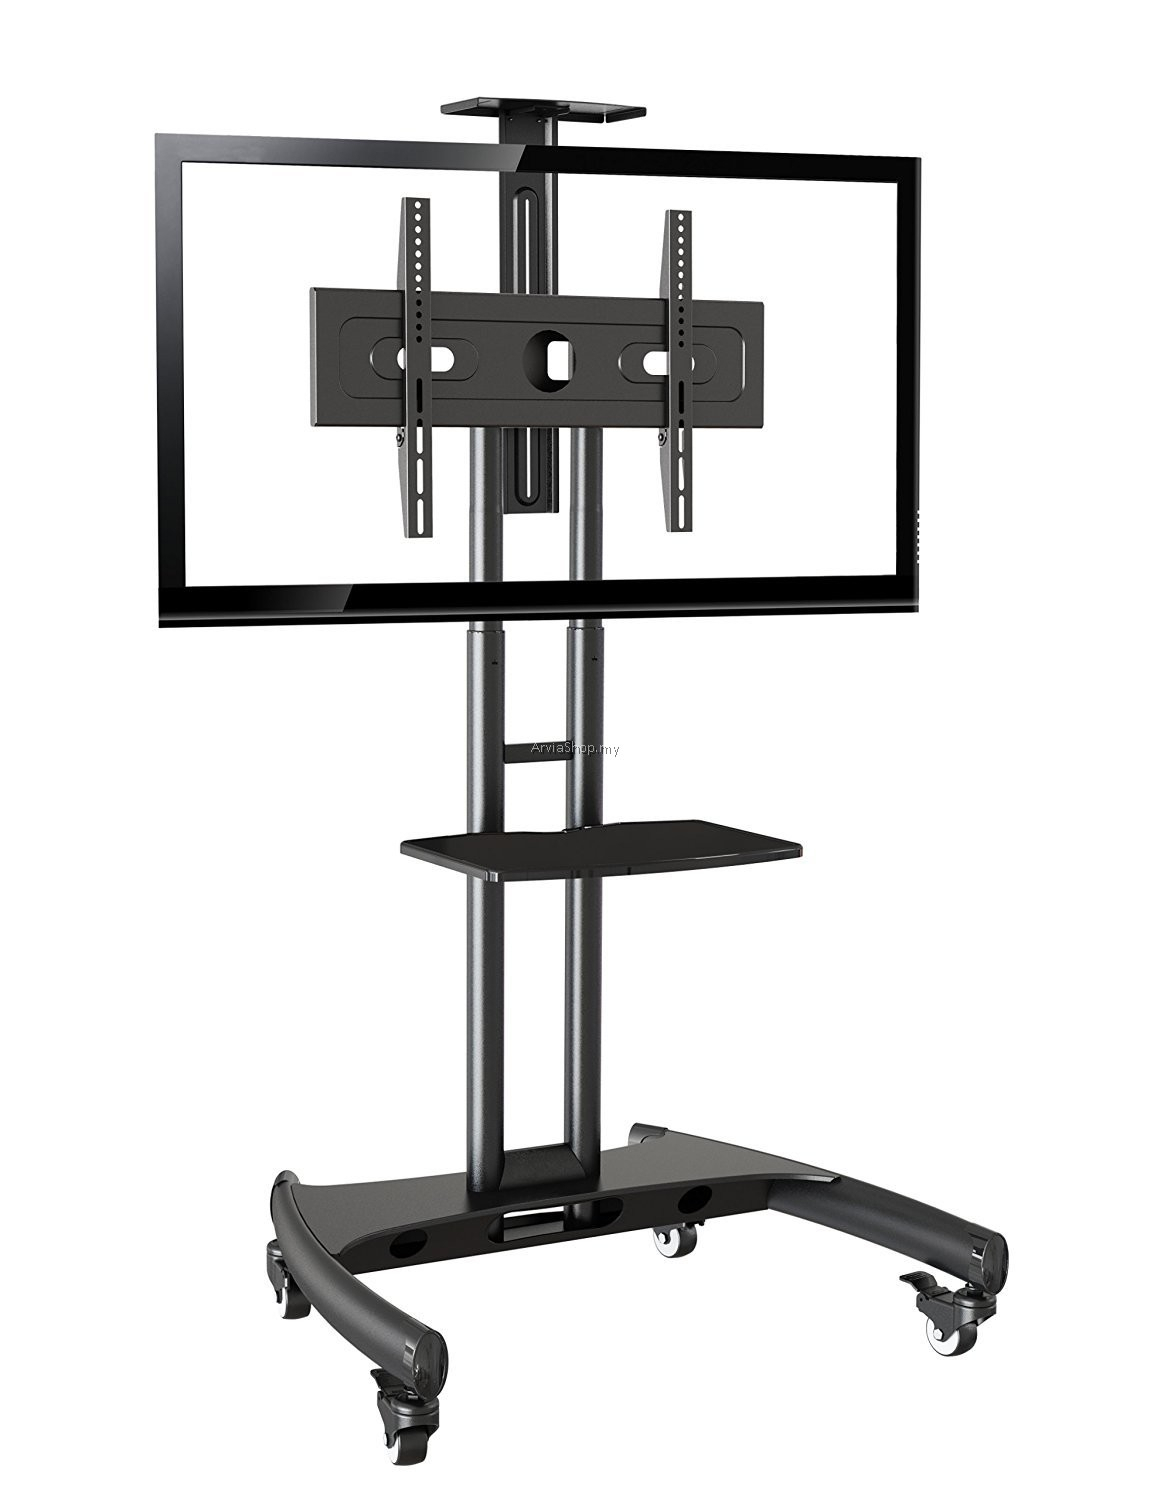 Portable Led/lcd Tv Stand Single Black Upto 32 Inches – 65 Regarding Single Tv Stands (View 1 of 15)